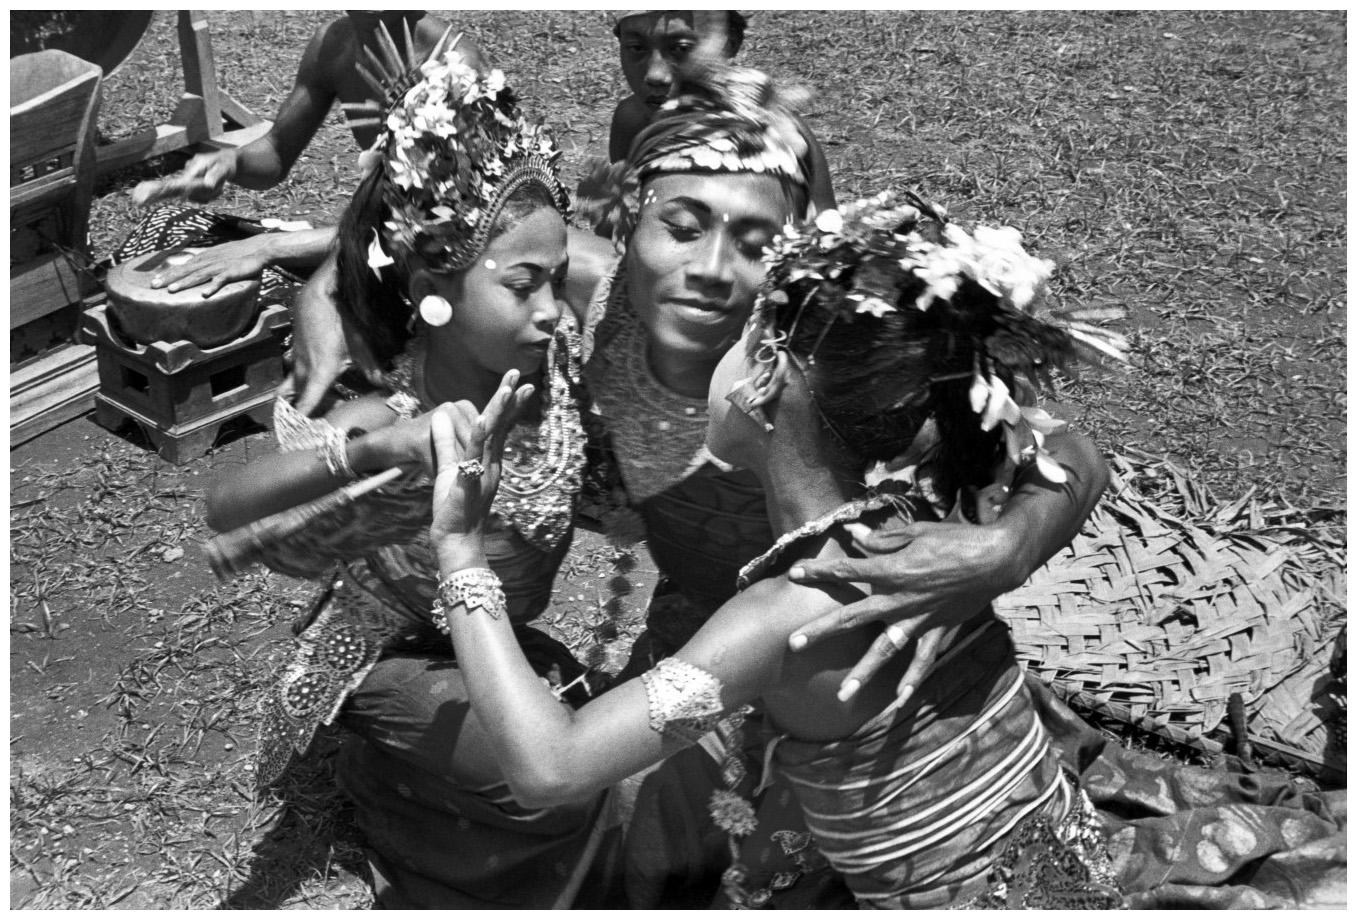 http://pleasurephotoroom.files.wordpress.com/2013/01/henri-cartier-bresson-sayan-bali-indonesia-1949.jpg